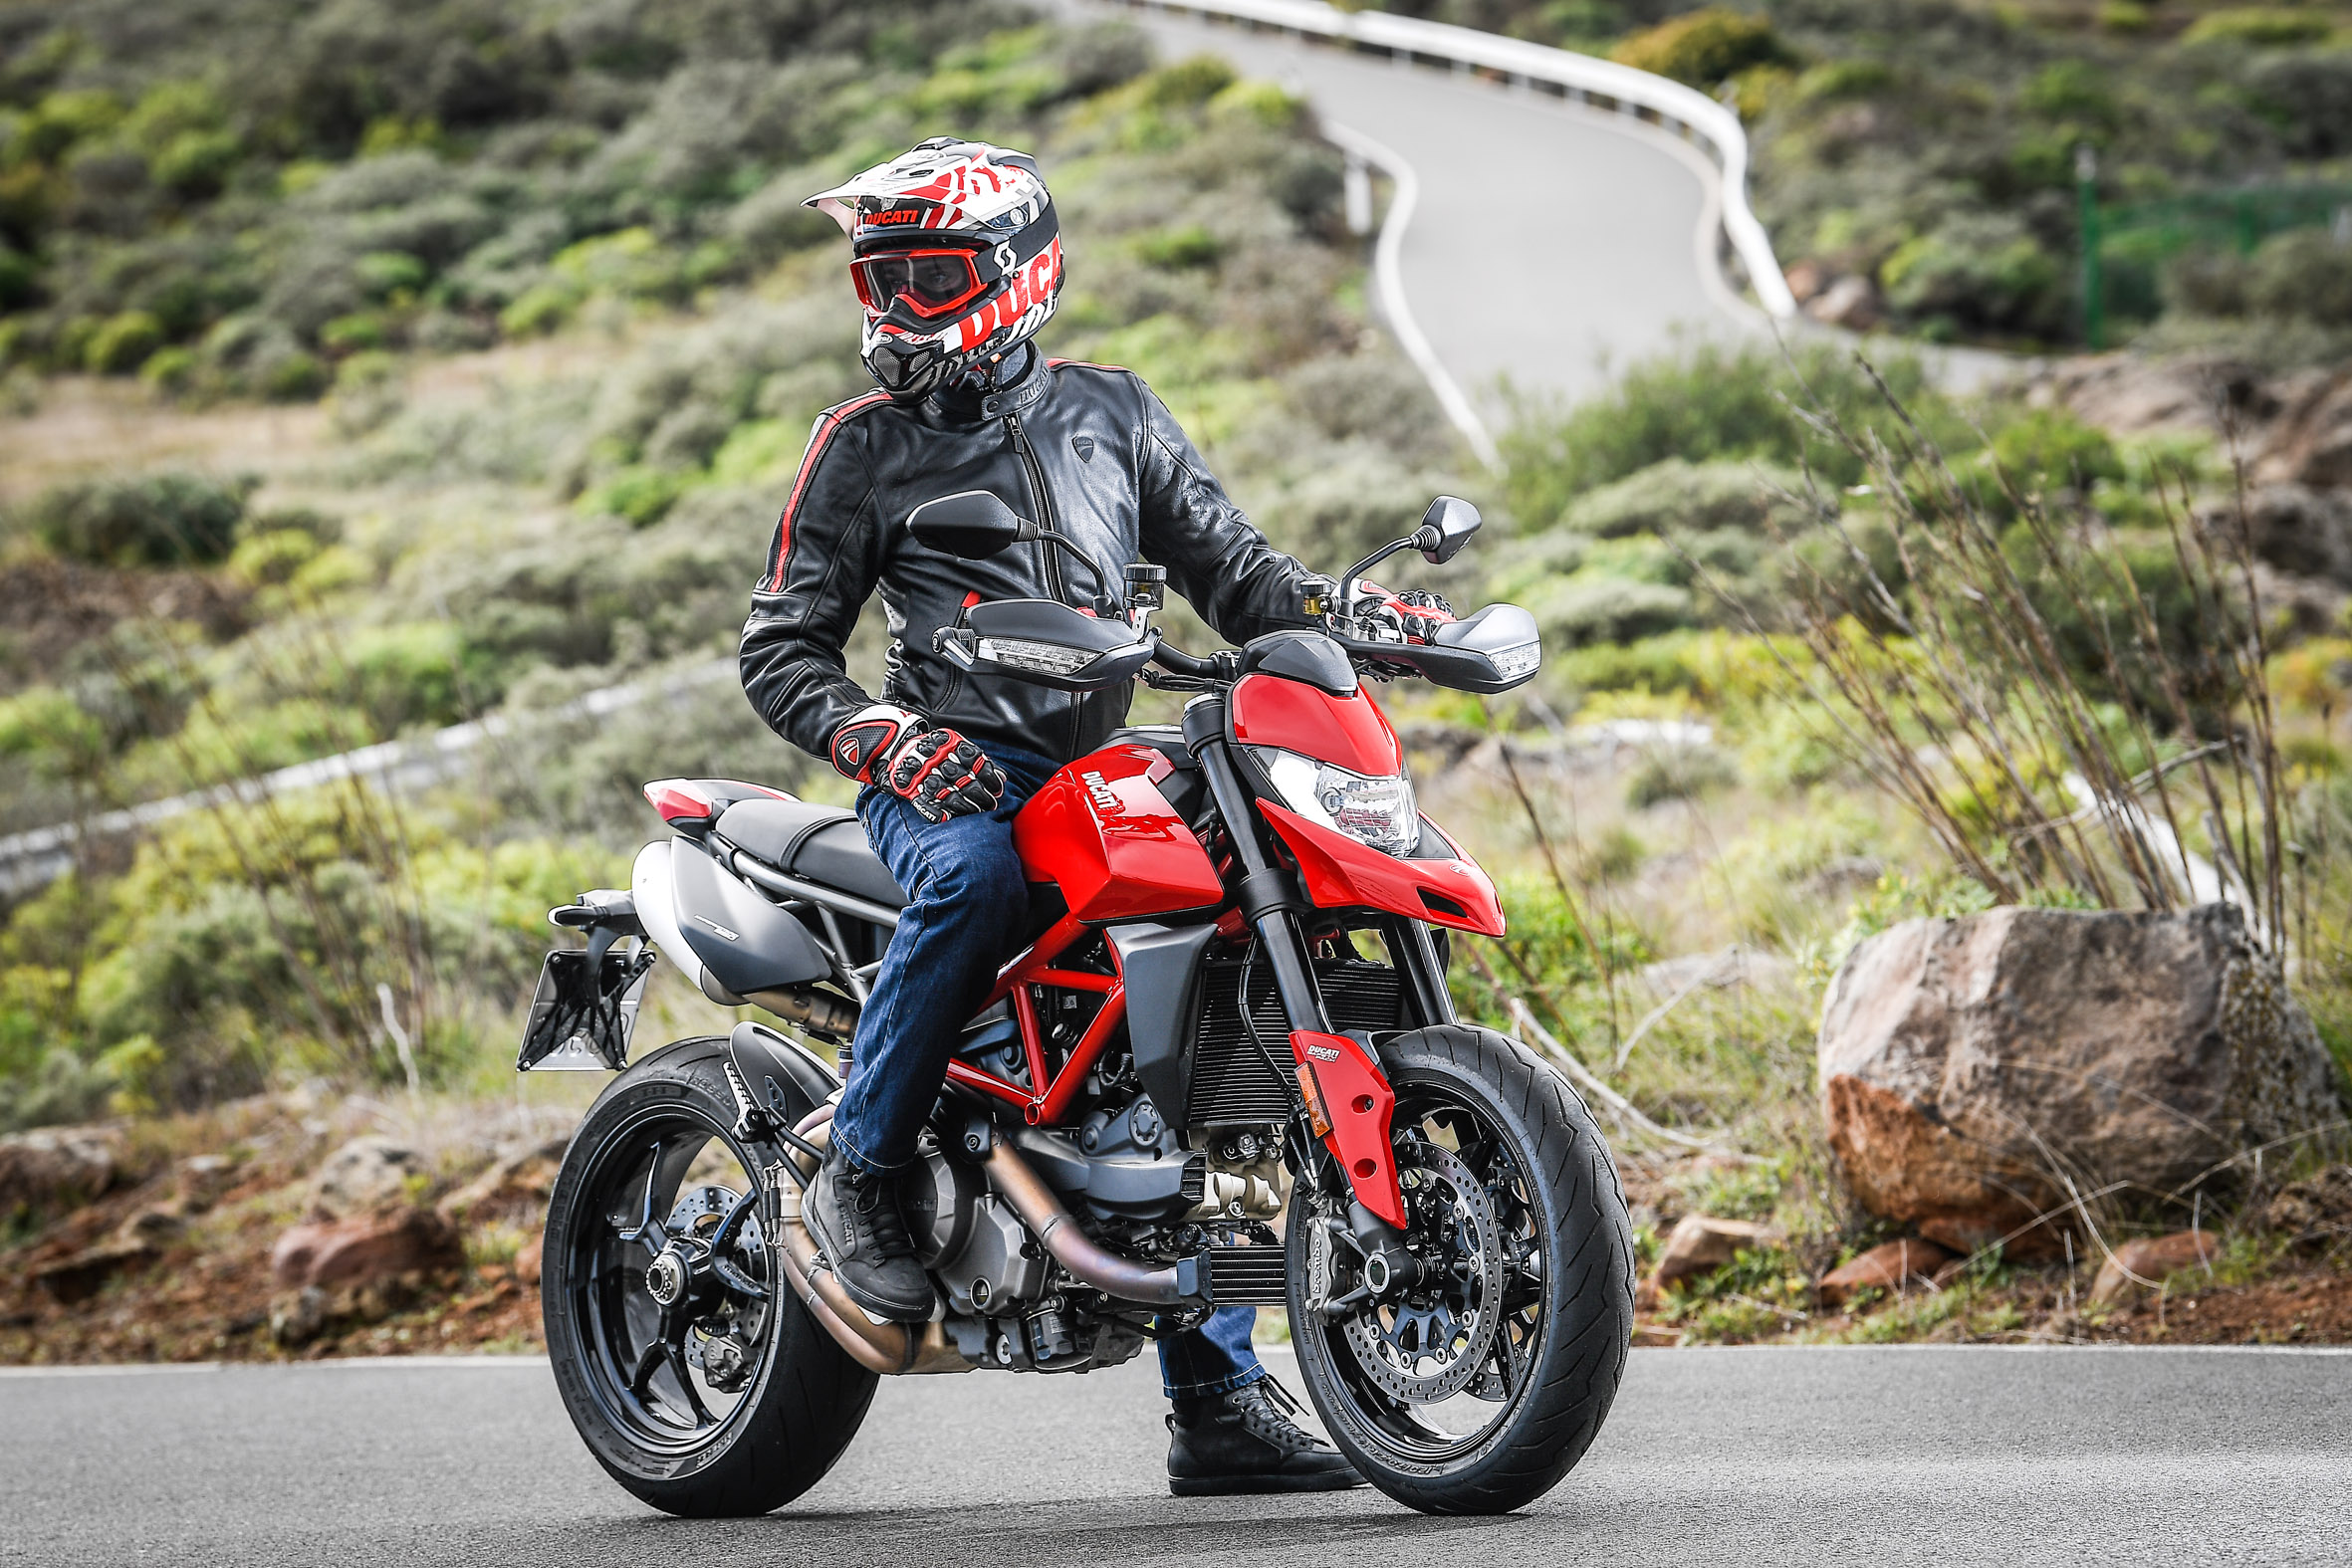 Hypermotard_950_Static 06_UC70270_Preview